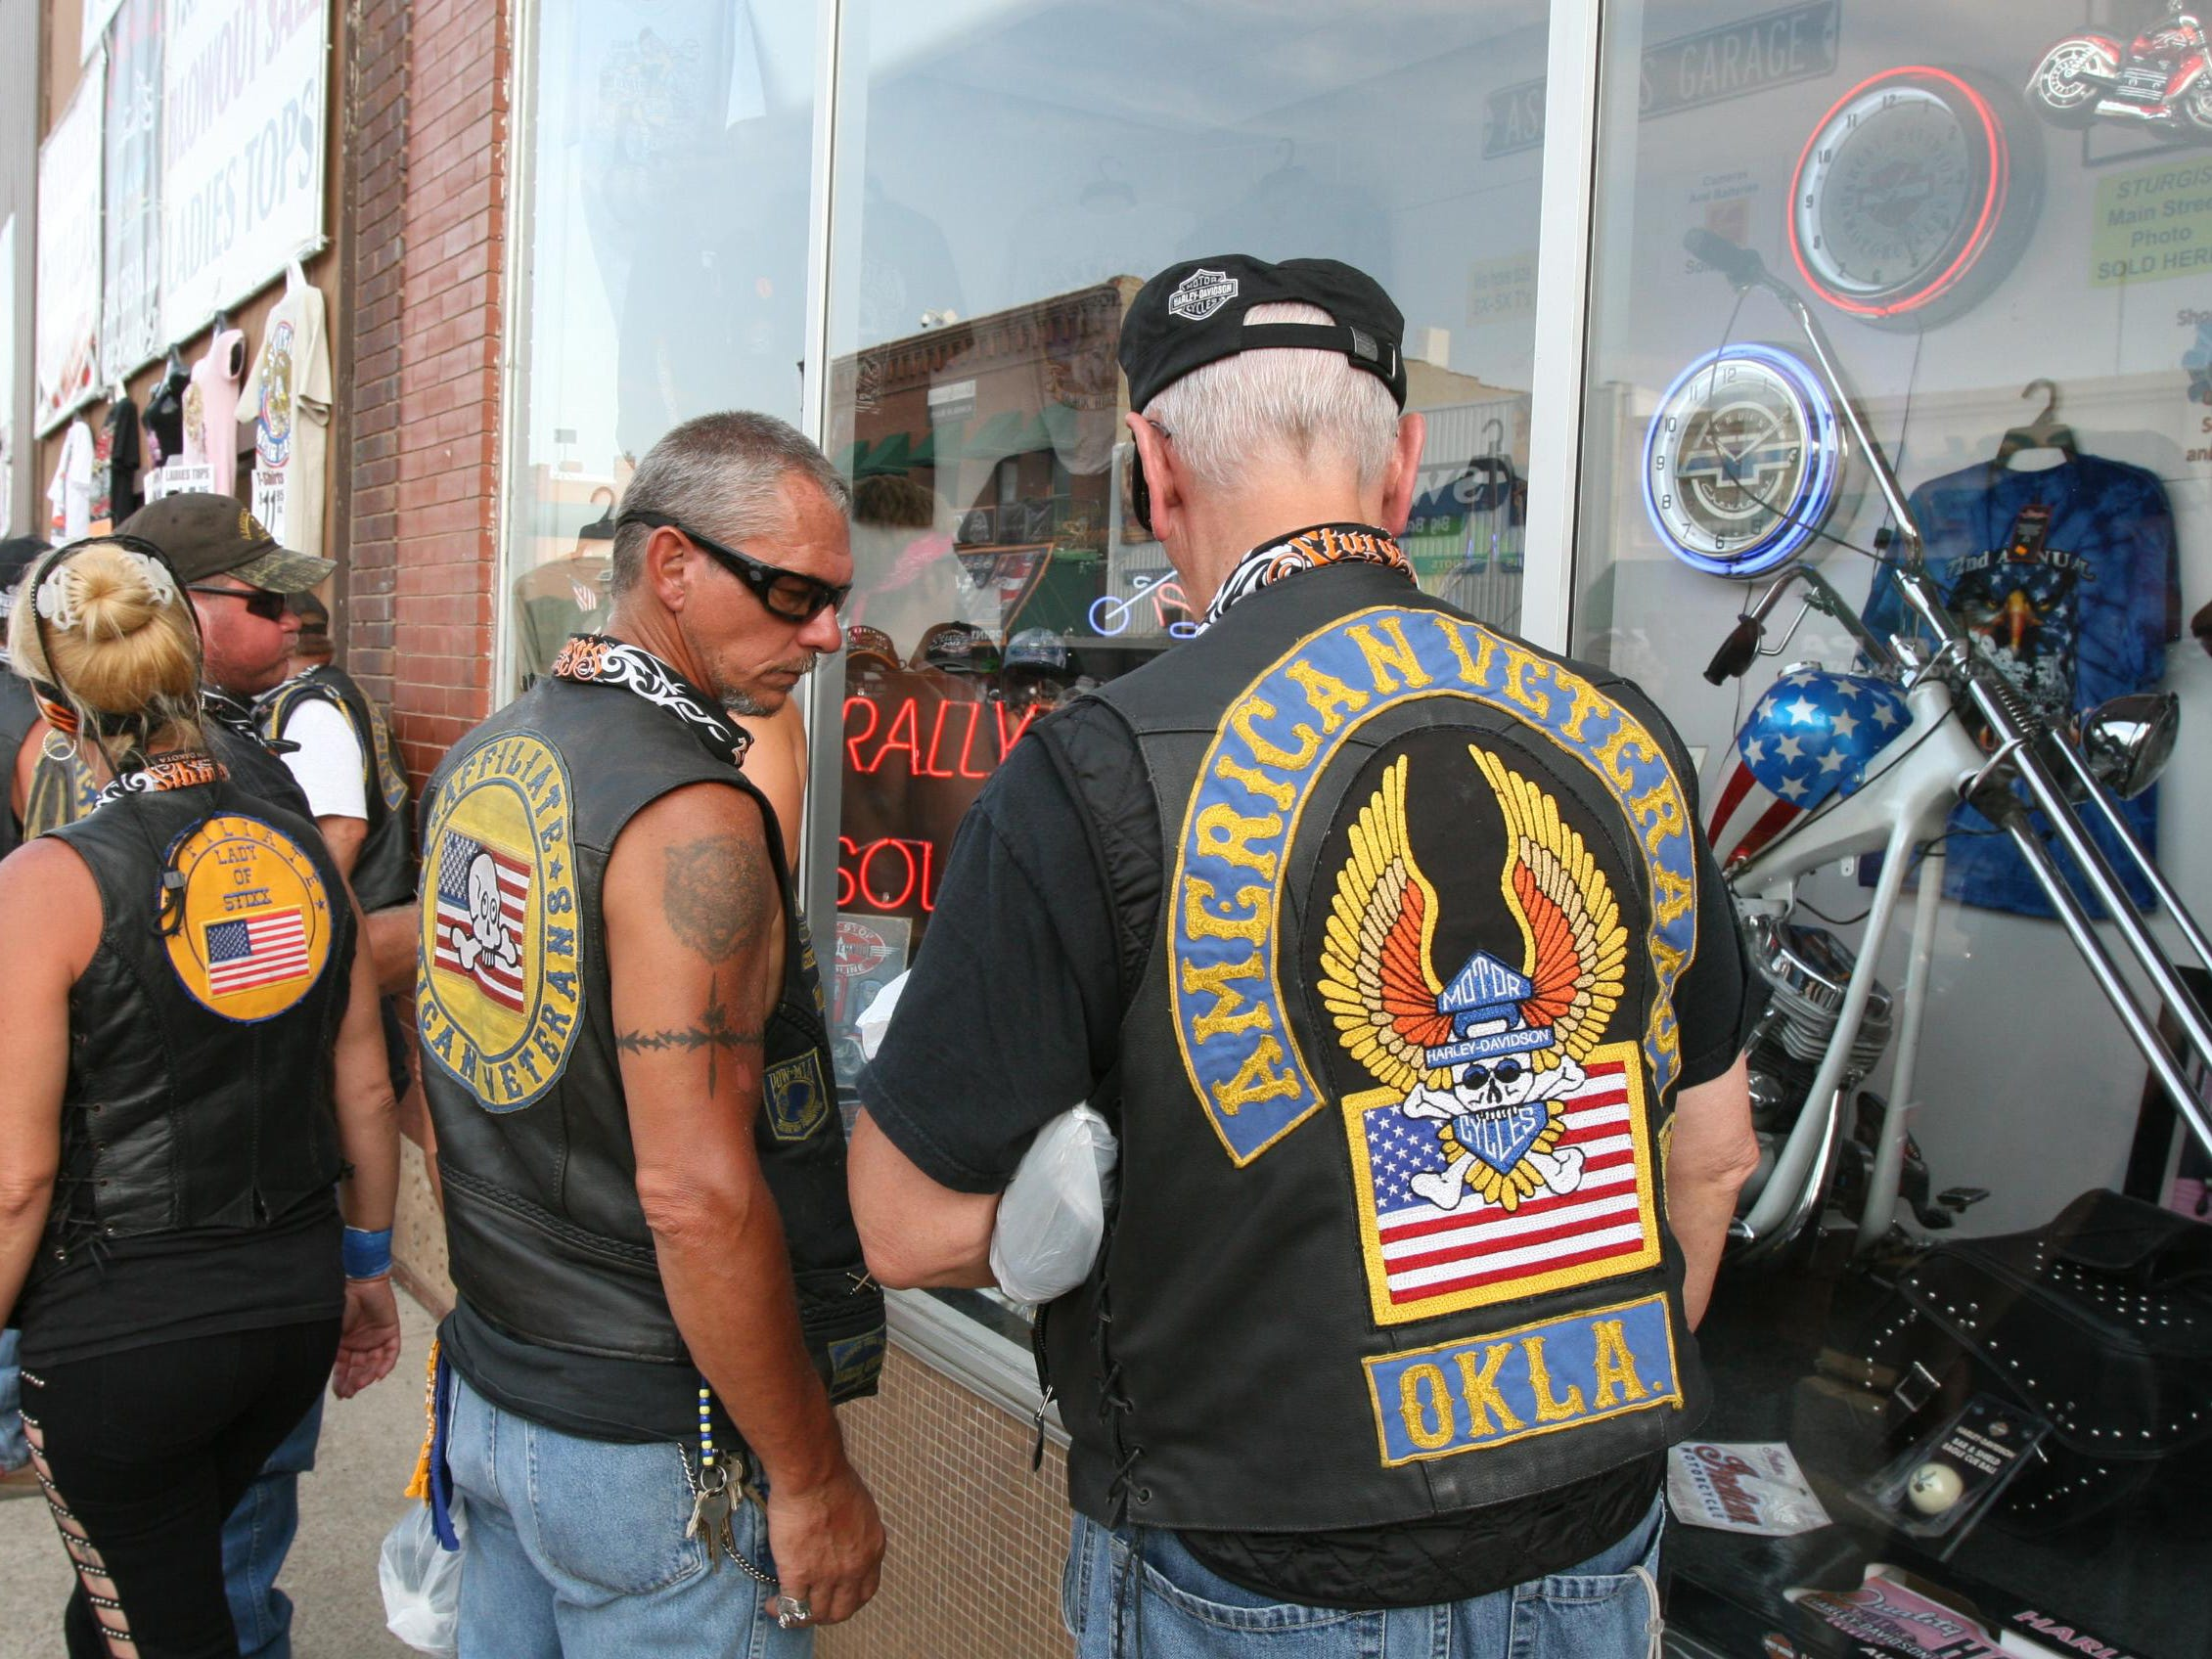 2012: A variety of groups, including large contingents of veterans, attend the annual bike rally at Sturgis, S.D.